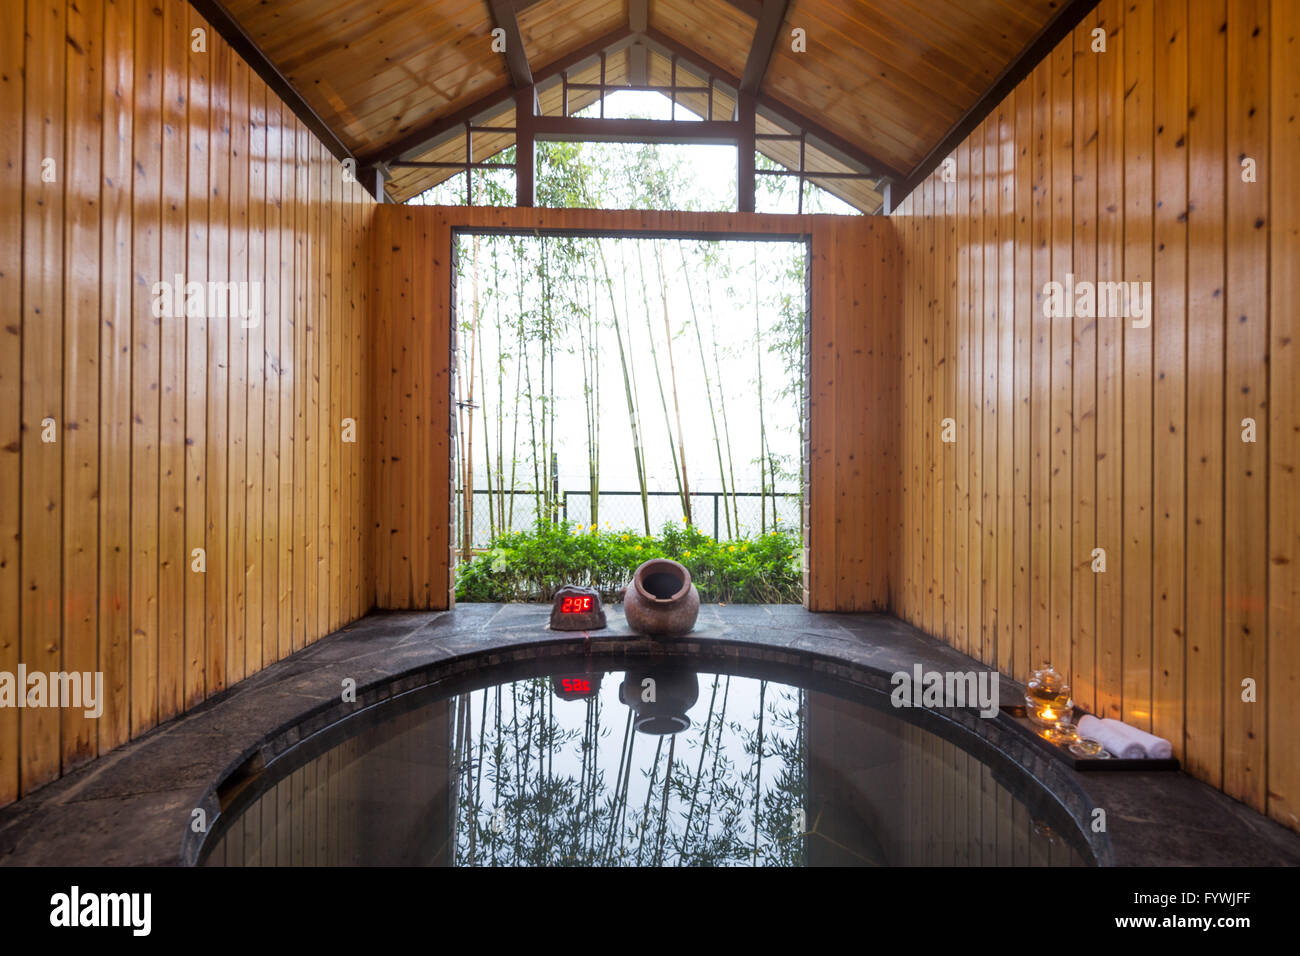 interior of hotspring for spas - Stock Image